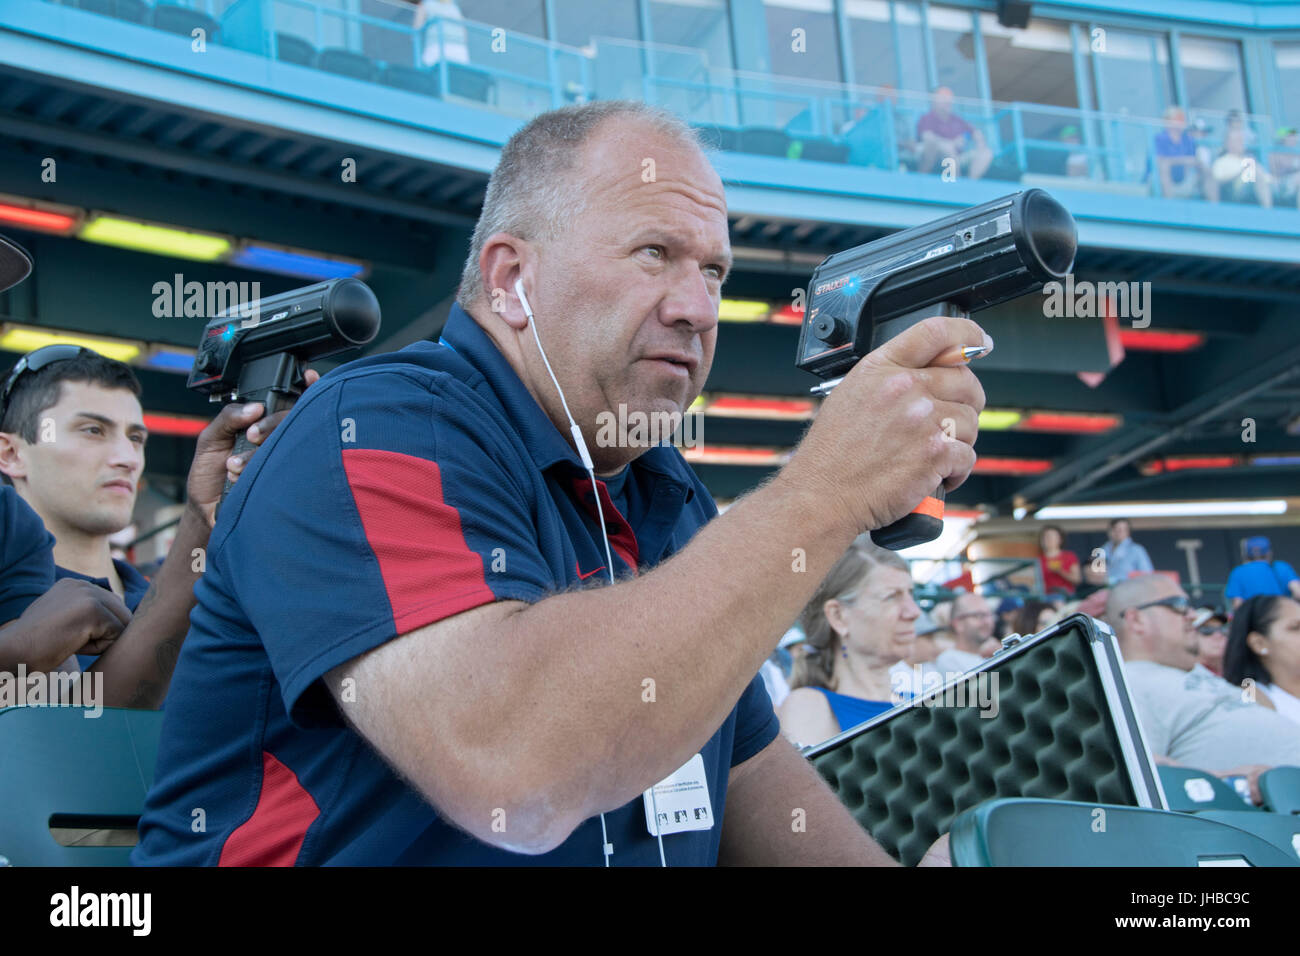 Boston Red Sox Scouting Supervisor Ray Fagnant monitoring pitchers on a radar gun at a Brooklyn Cyclones minor league - Stock Image